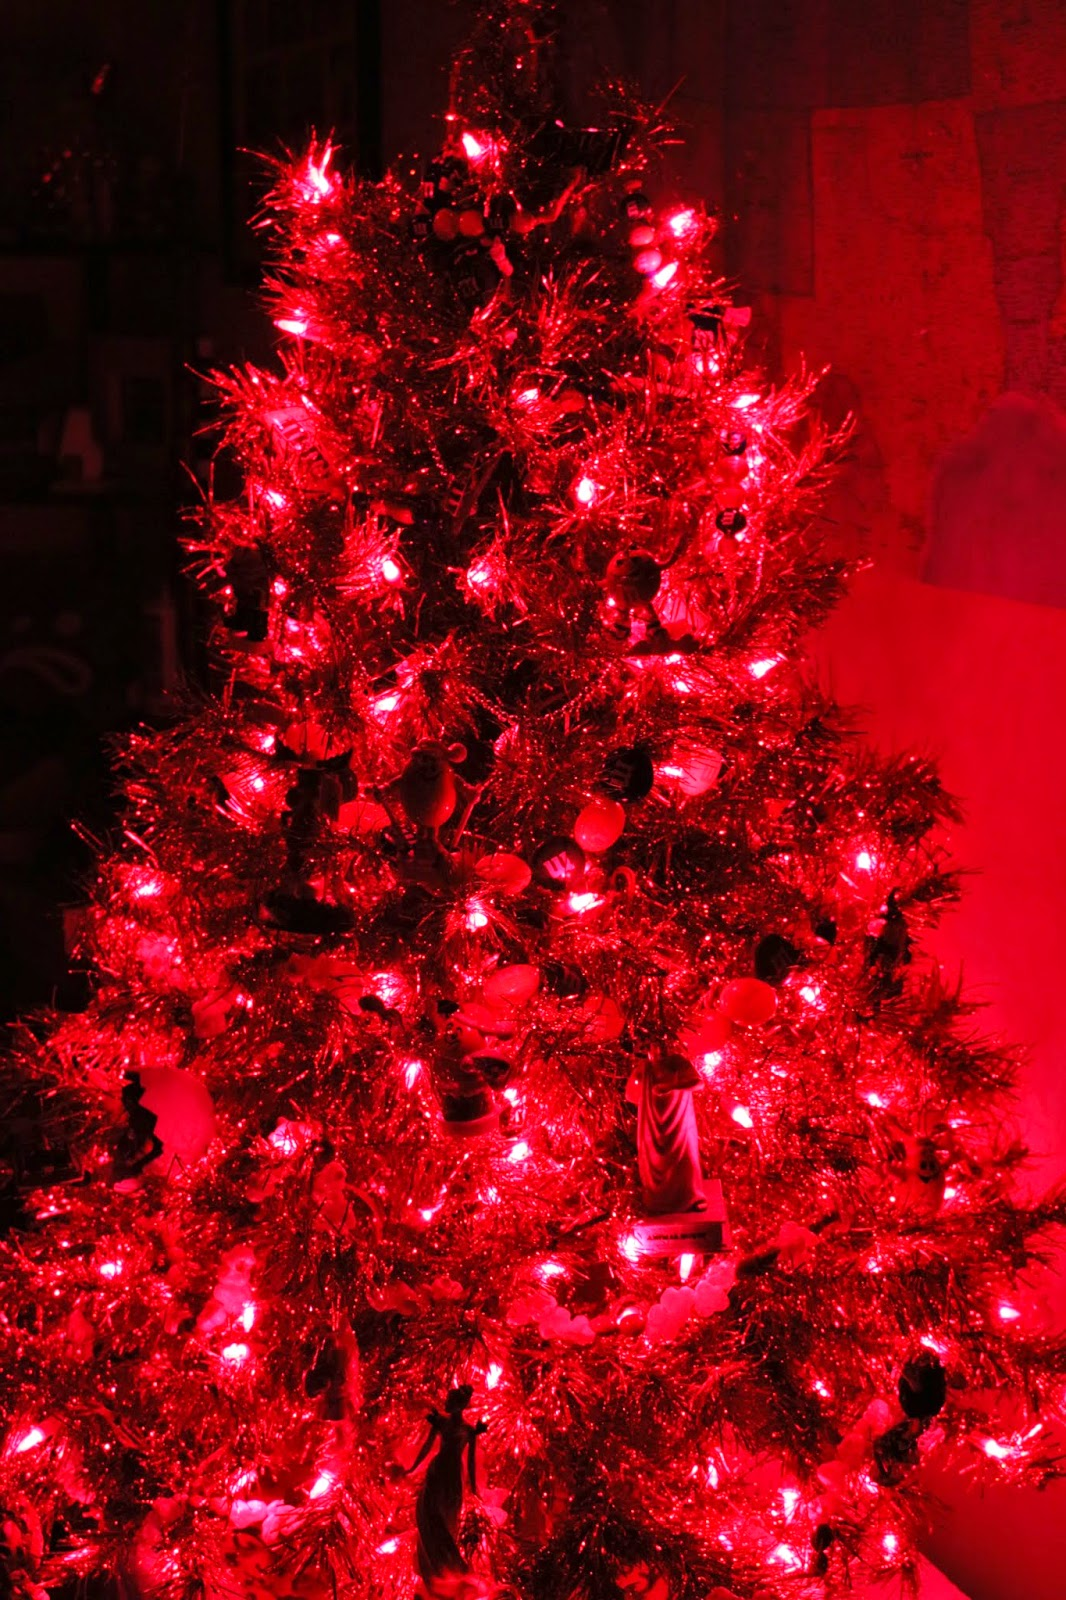 Crazy shenanigans the red movie christmas tree